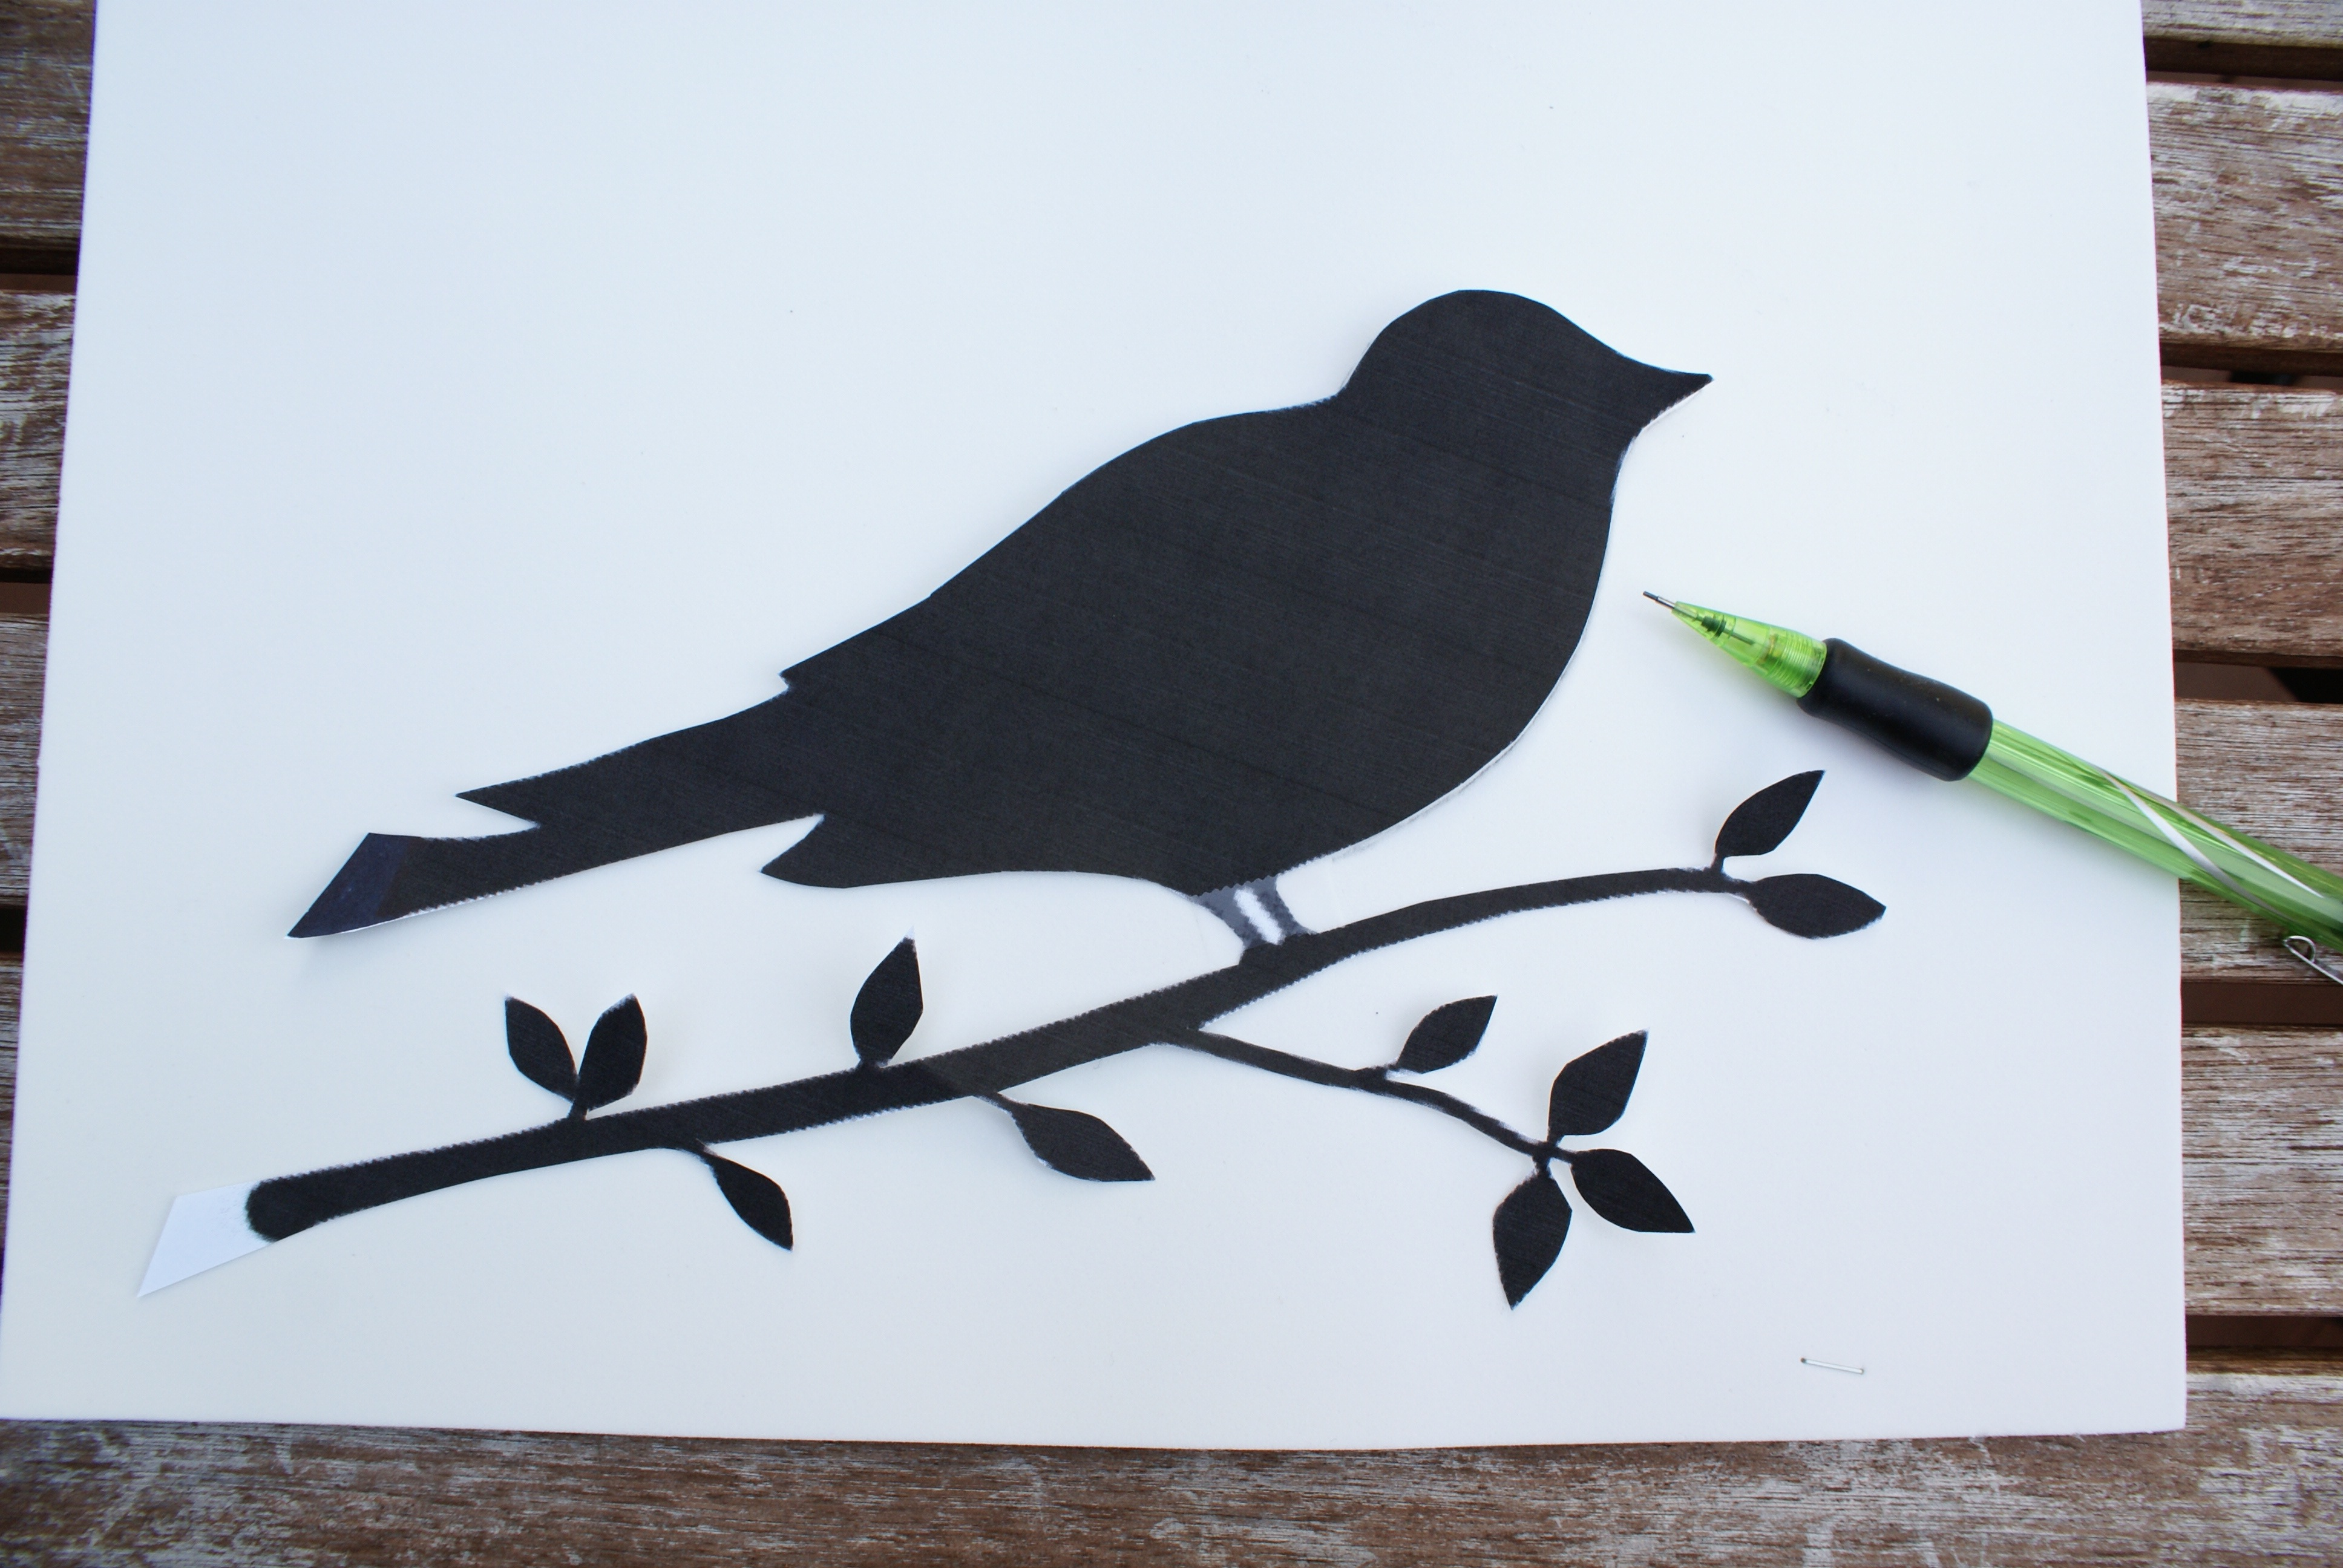 Preparing to trace bird on branch from cutout stencil onto foam